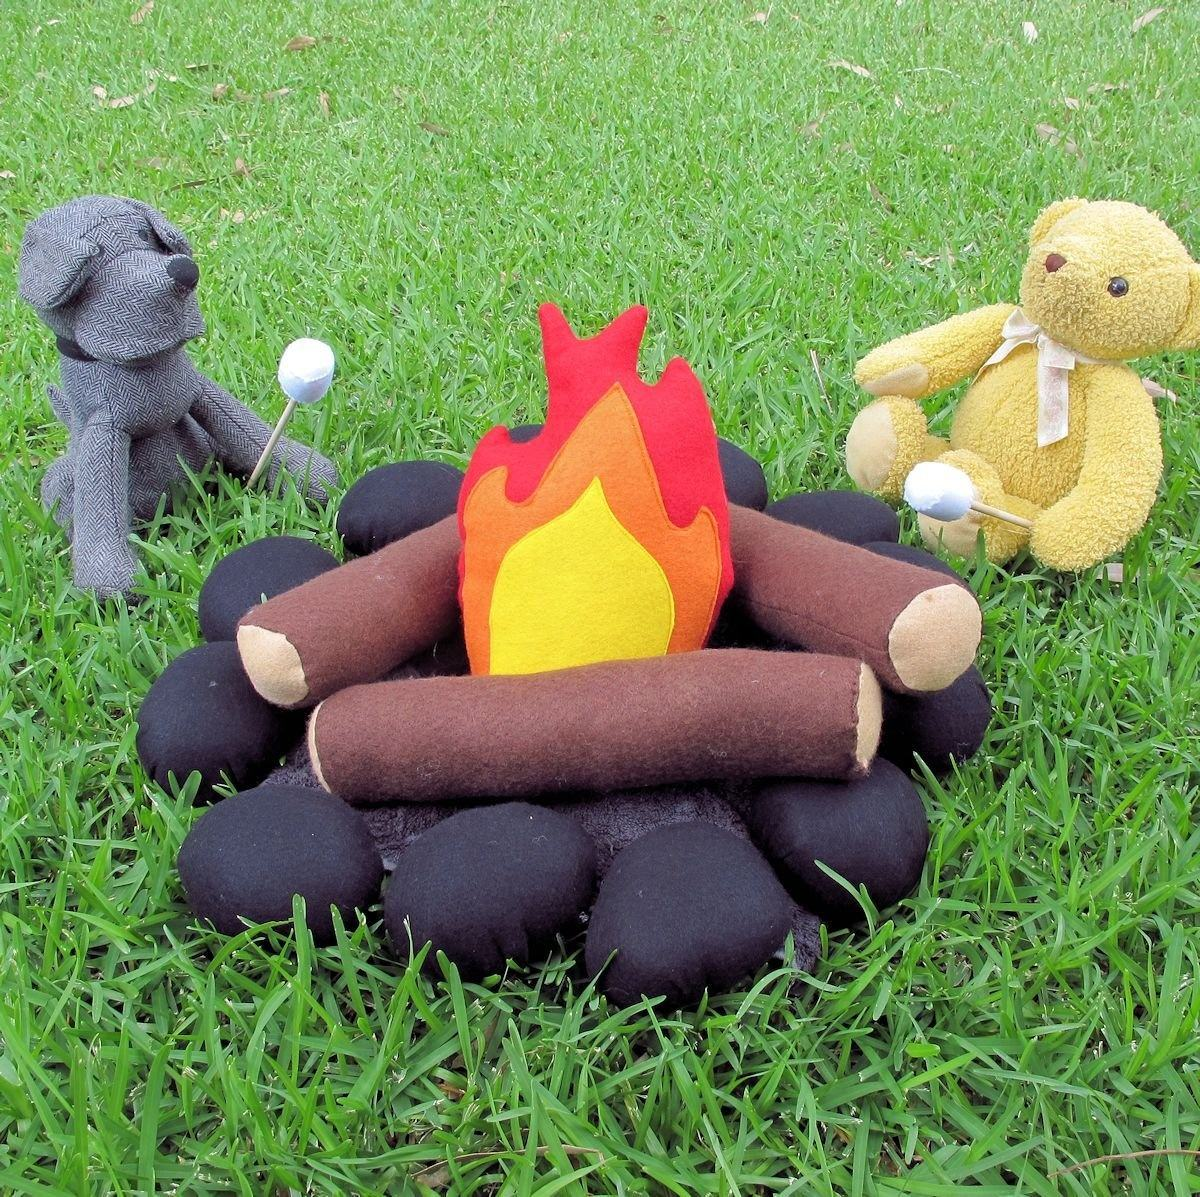 New Design Kids Camping Toy Felt Campfire Play Set for Pretend Play